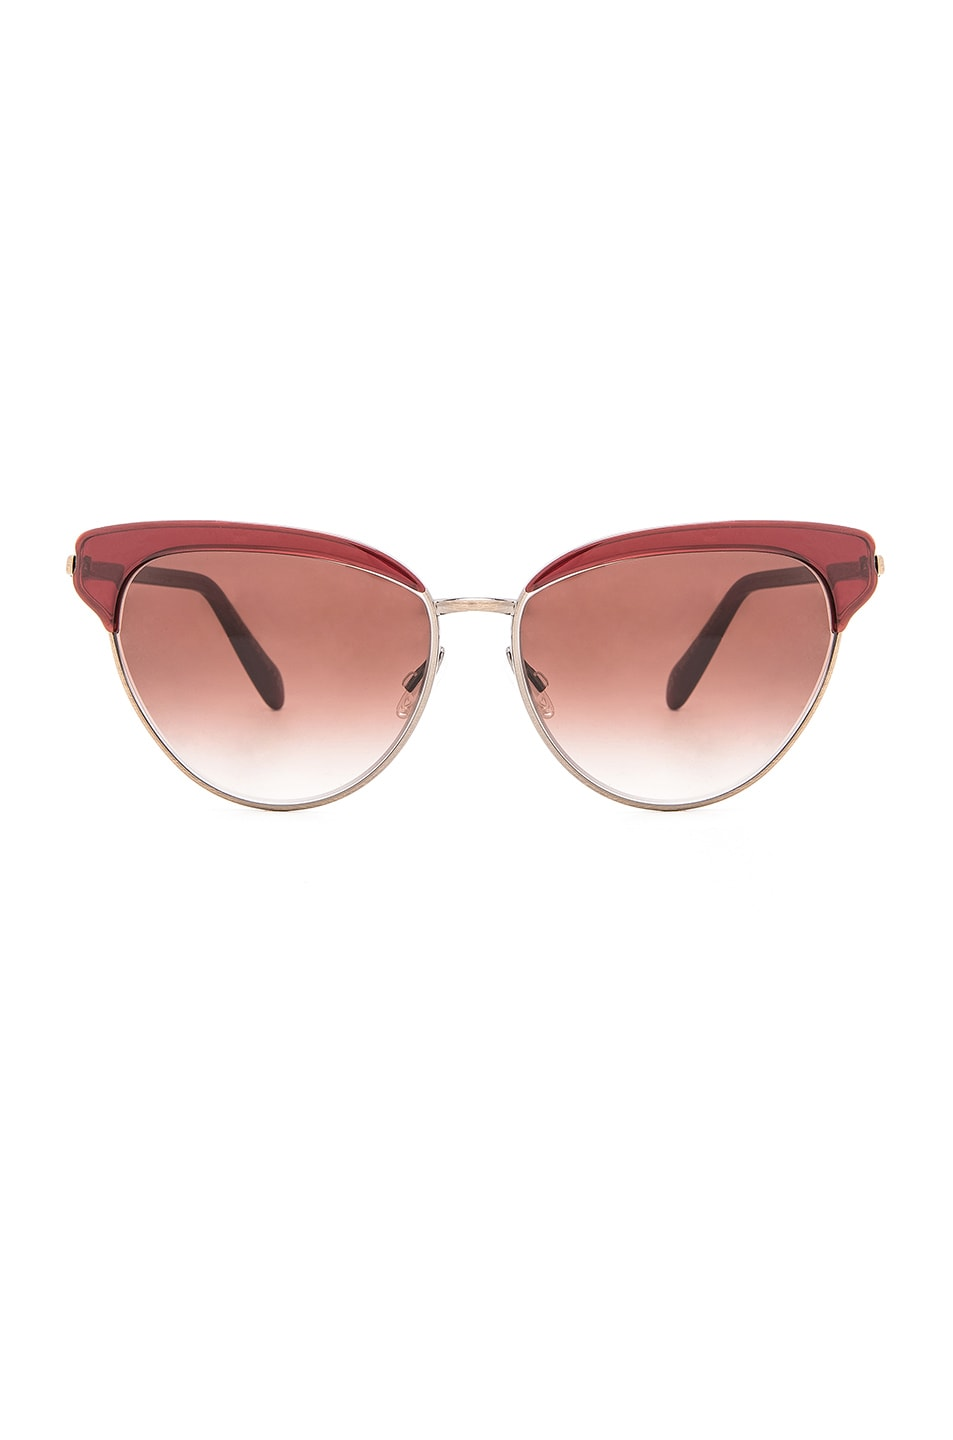 53c8968394 Image 1 of Oliver Peoples Josa Sunglasses in Ruby   Spice Brown